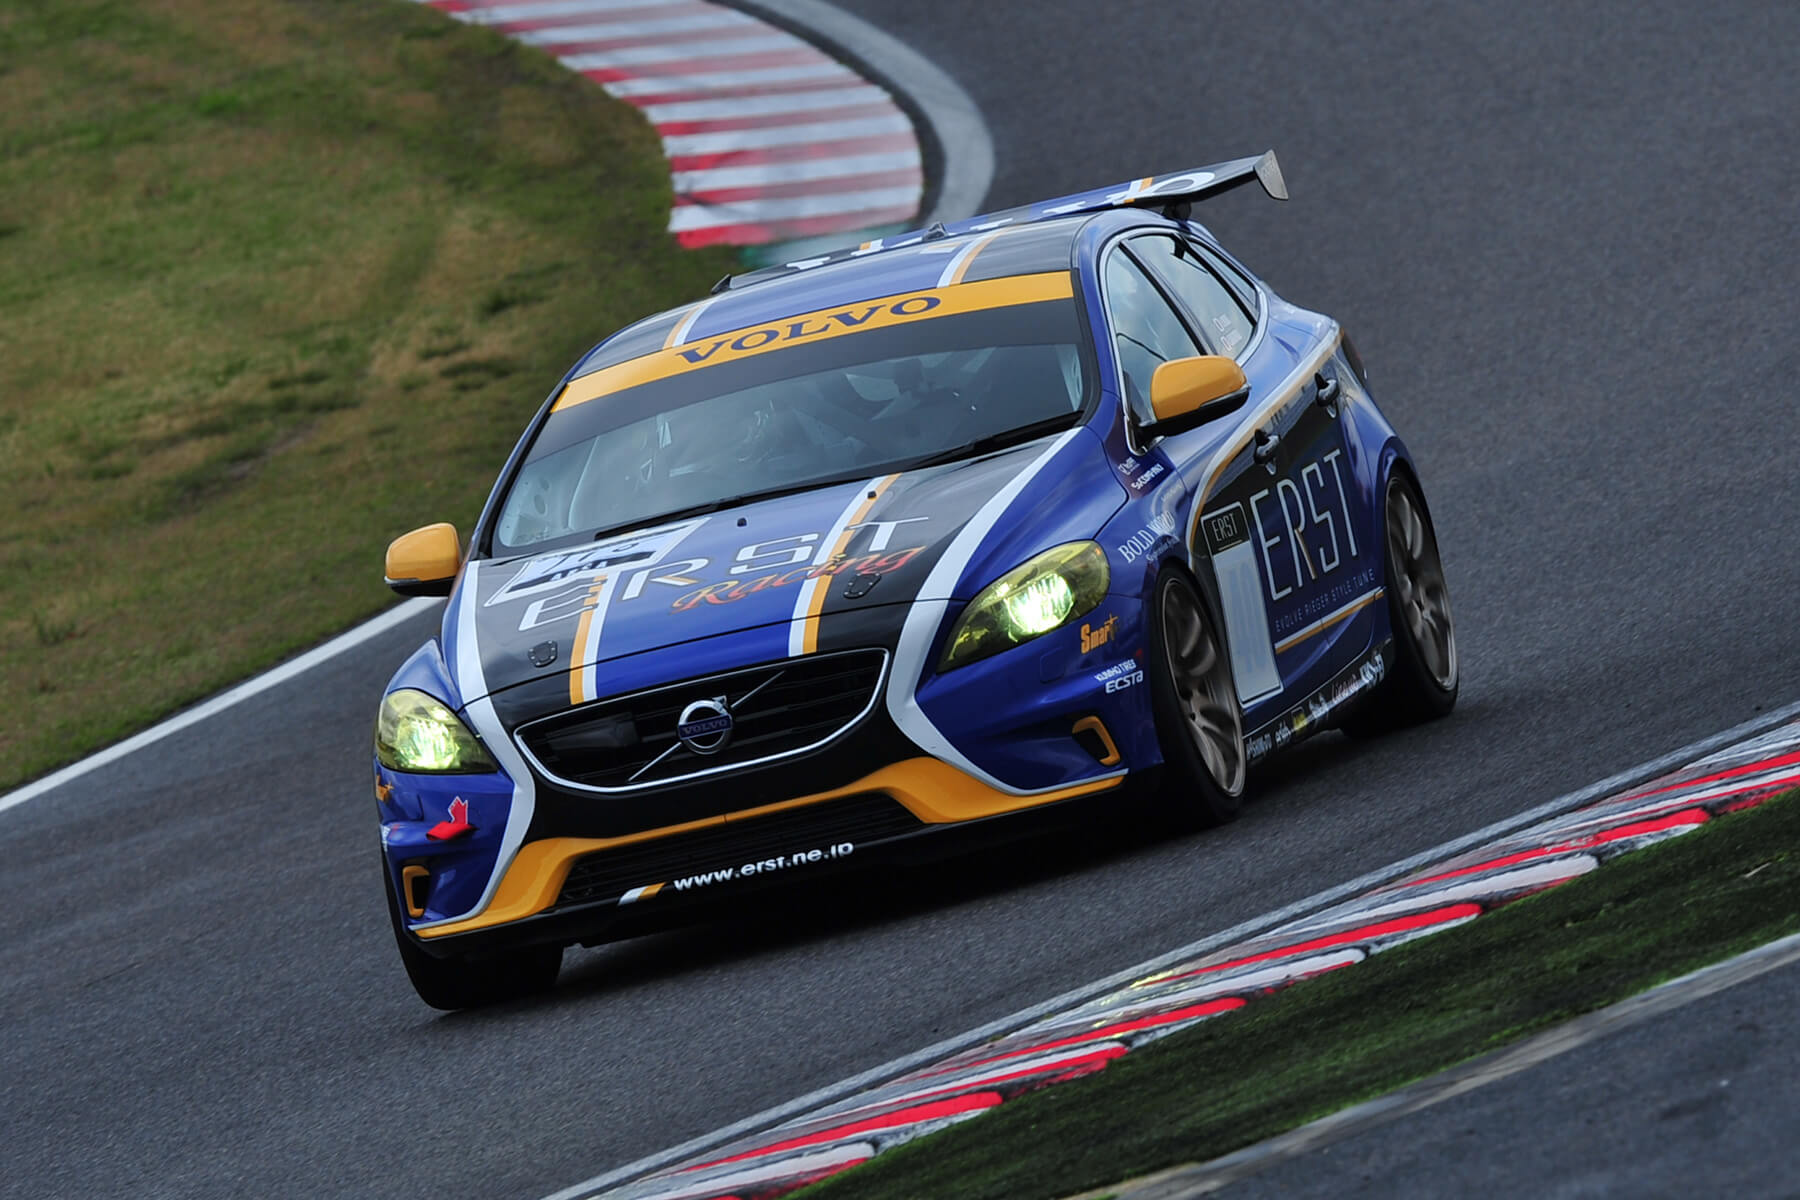 ETCC 2014 - Endurance Vol.4 2014-4 SUZUKA INTERNATIONAL RACING COURSE